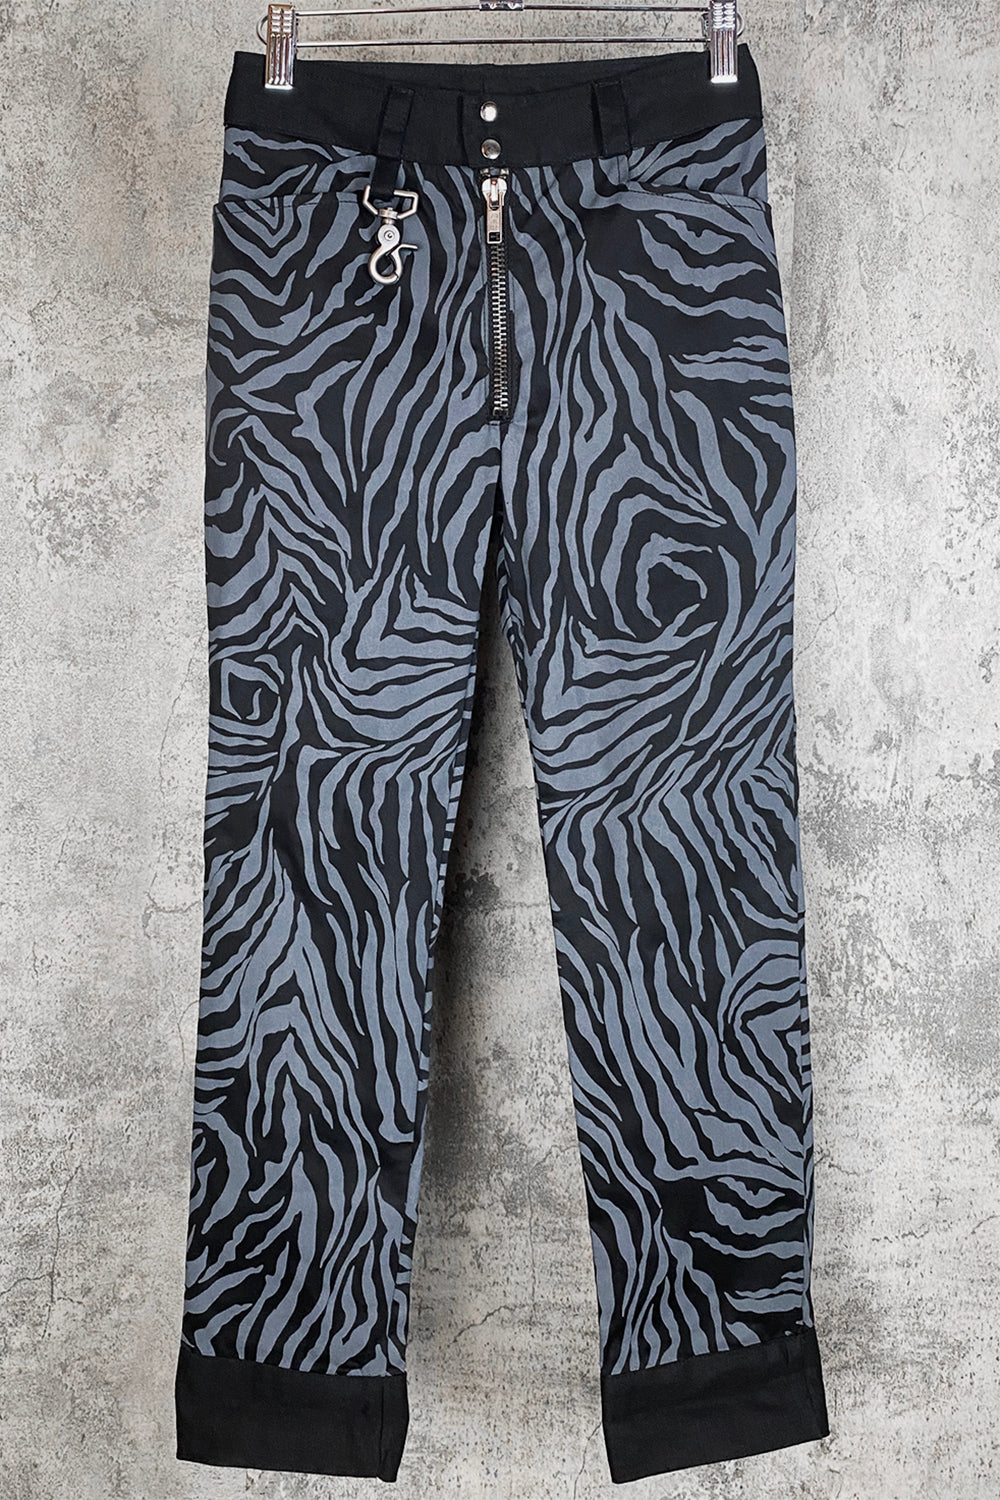 Trainspotting Skinny Pants | In Stock (Only a few pairs left! Last Restock)